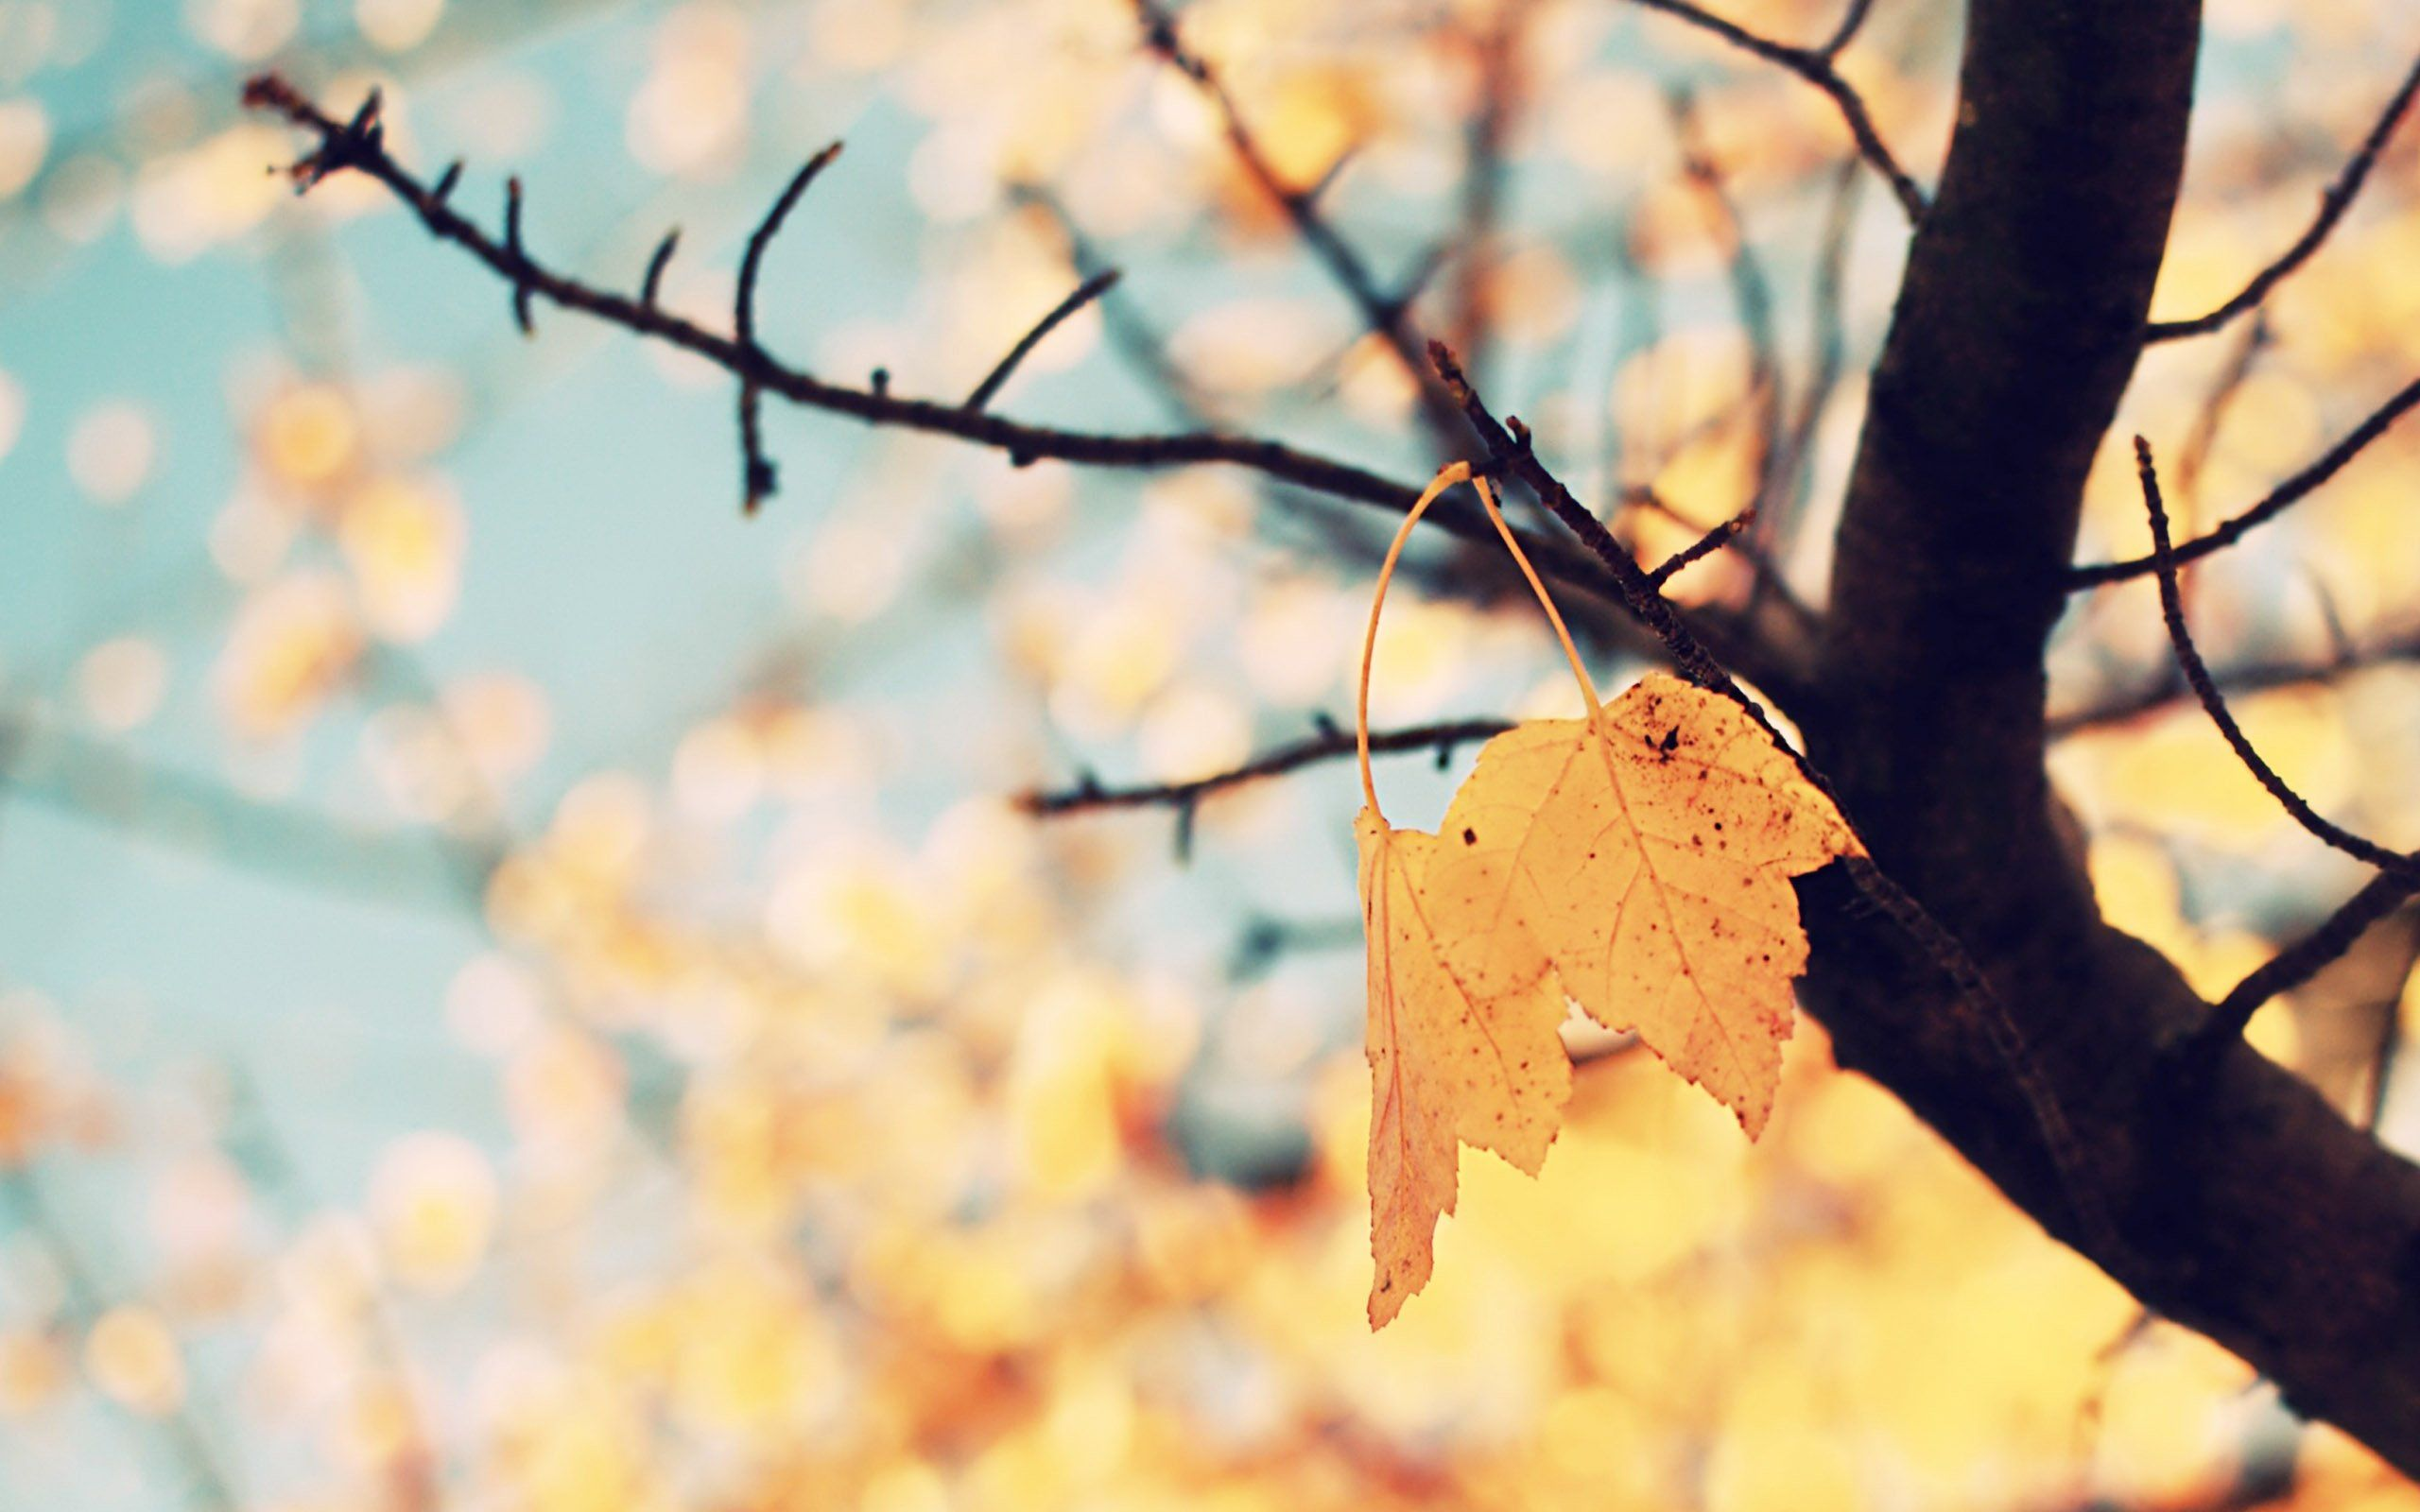 backgrounds cool tumblr iphone last leaf left backgrounds backgrounds cool tumblr iphone last leaf left